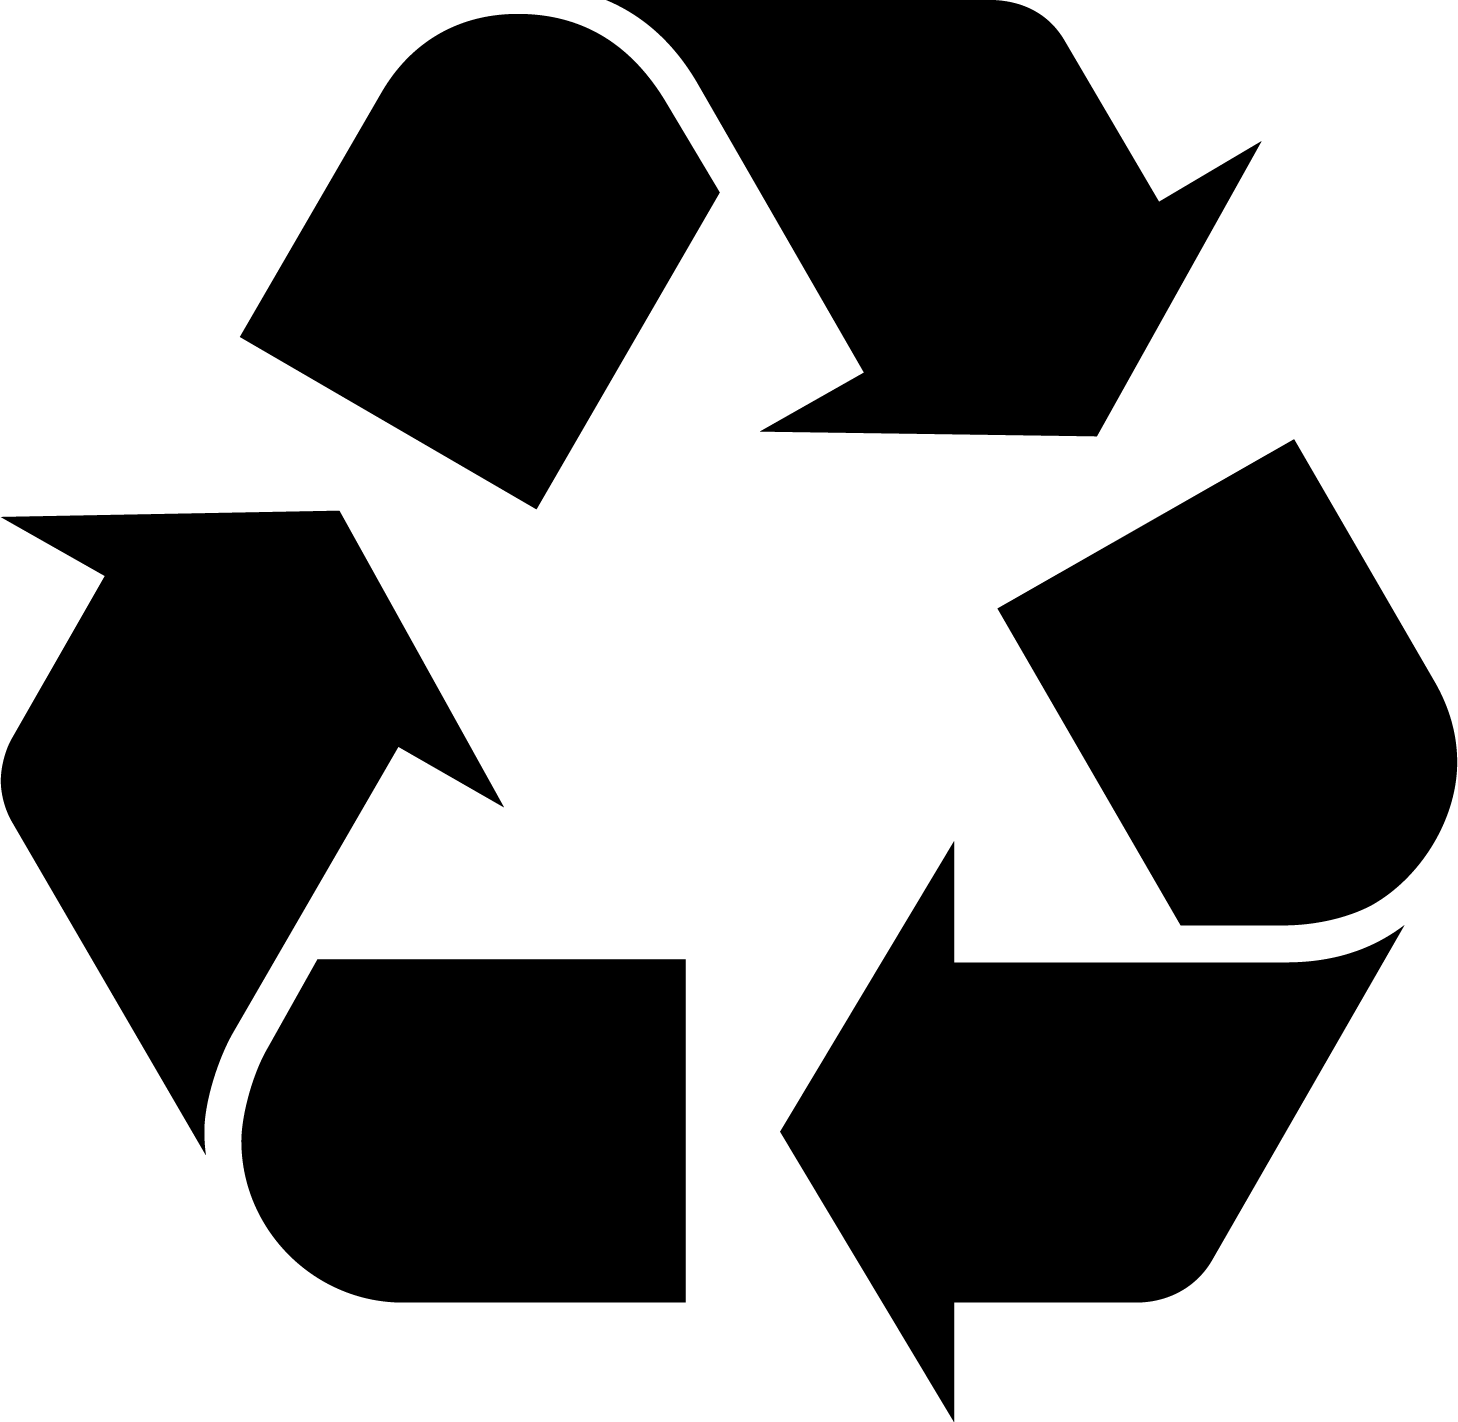 Recycle Symbol png